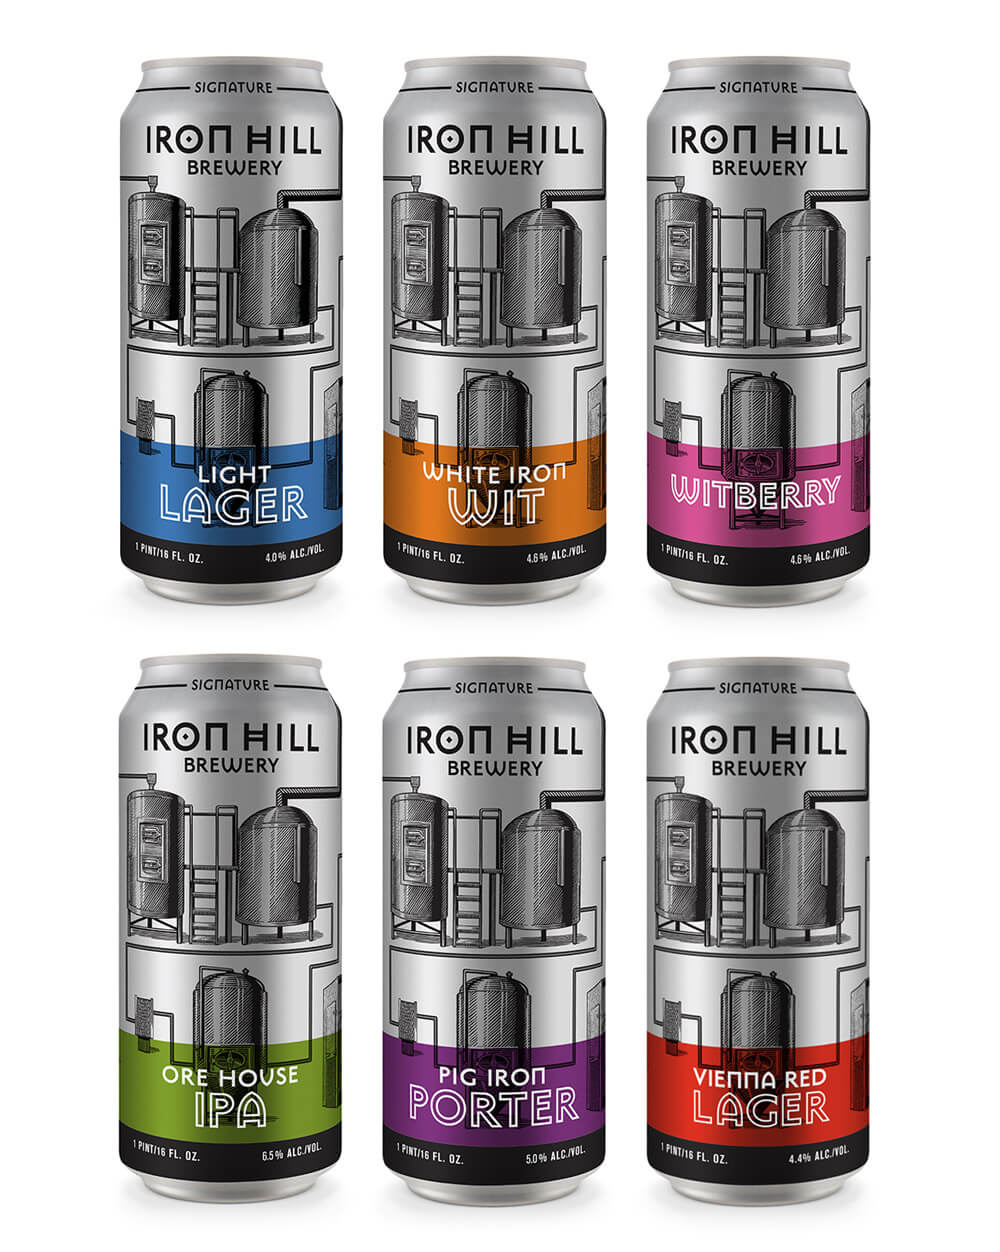 An array of Iron Hill cans with packaging designs that Smith Brothers made.